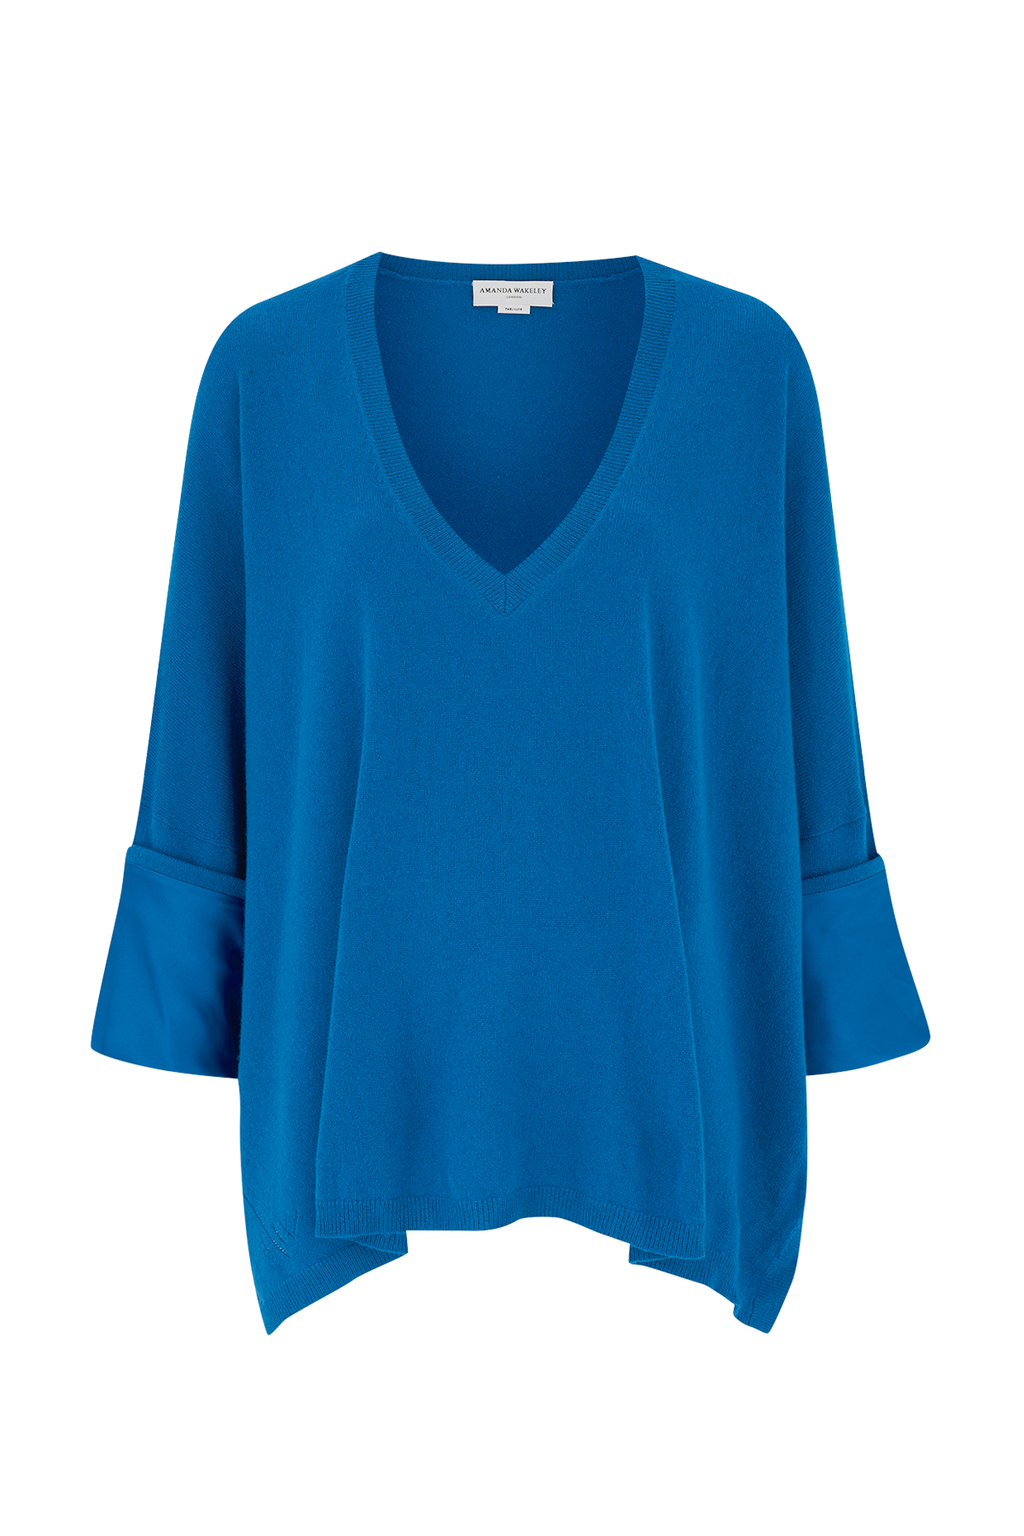 Hutton Cobalt Cashmere Boyfriend Top - neckline: v-neck; pattern: plain; predominant colour: diva blue; occasions: casual; length: standard; style: top; fit: loose; fibres: cashmere - 100%; sleeve length: long sleeve; sleeve style: standard; texture group: knits/crochet; pattern type: fabric; season: s/s 2016; wardrobe: highlight